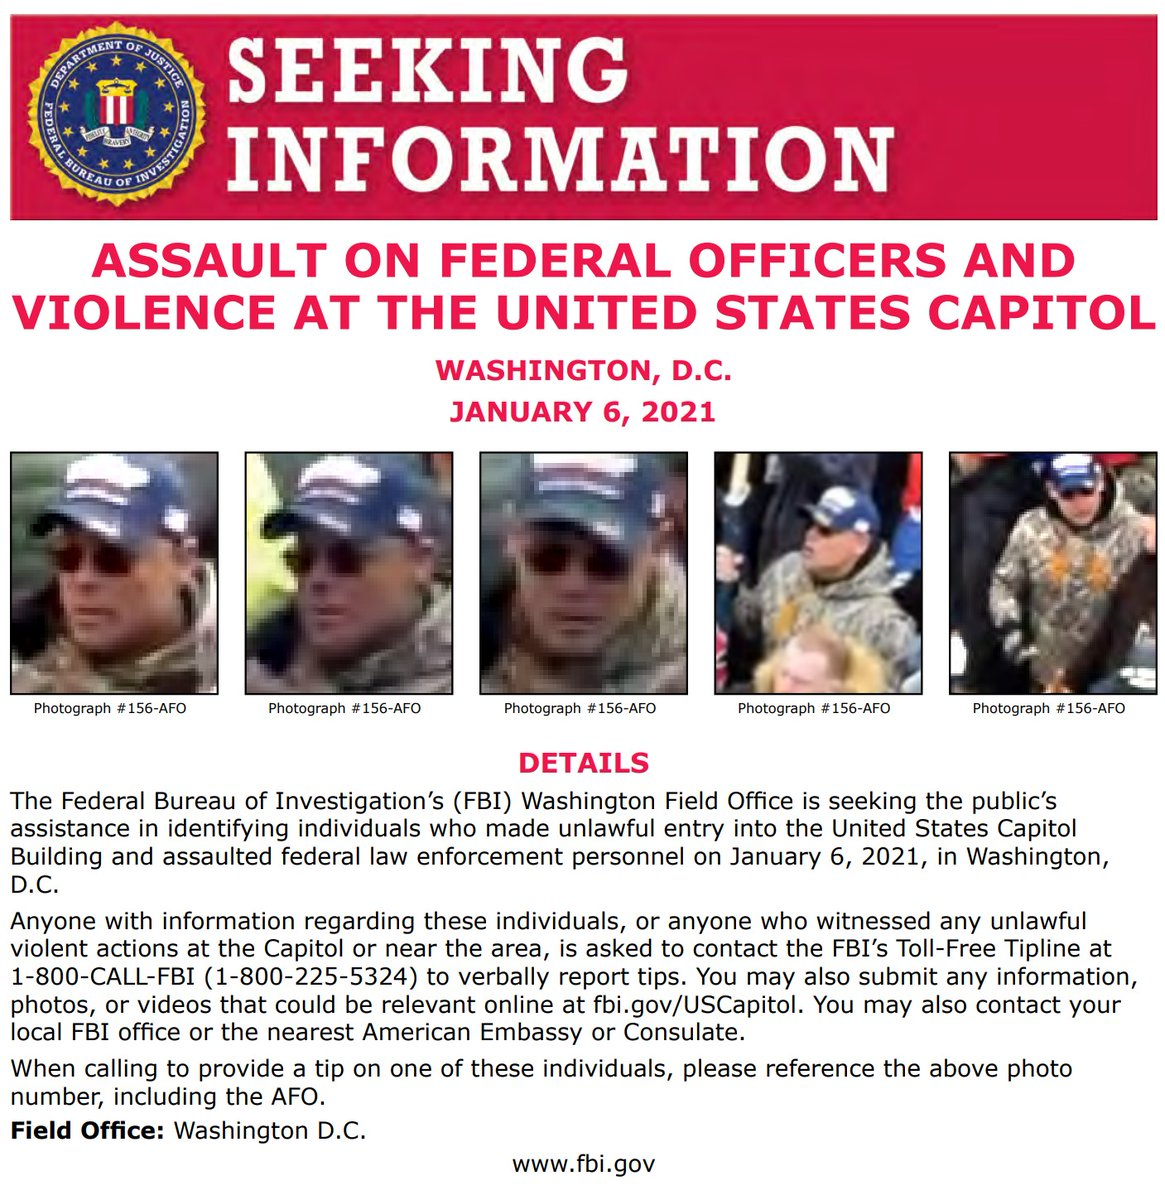 NEW: #FBIWFO is seeking the public's assistance in identifying this individual who made unlawful entry into the US Capitol & assaulted law enforcement on January 6th. If you have info, call 1800CALLFBI or submit info to tips.fbi.gov. fbi.gov/wanted/seeking…